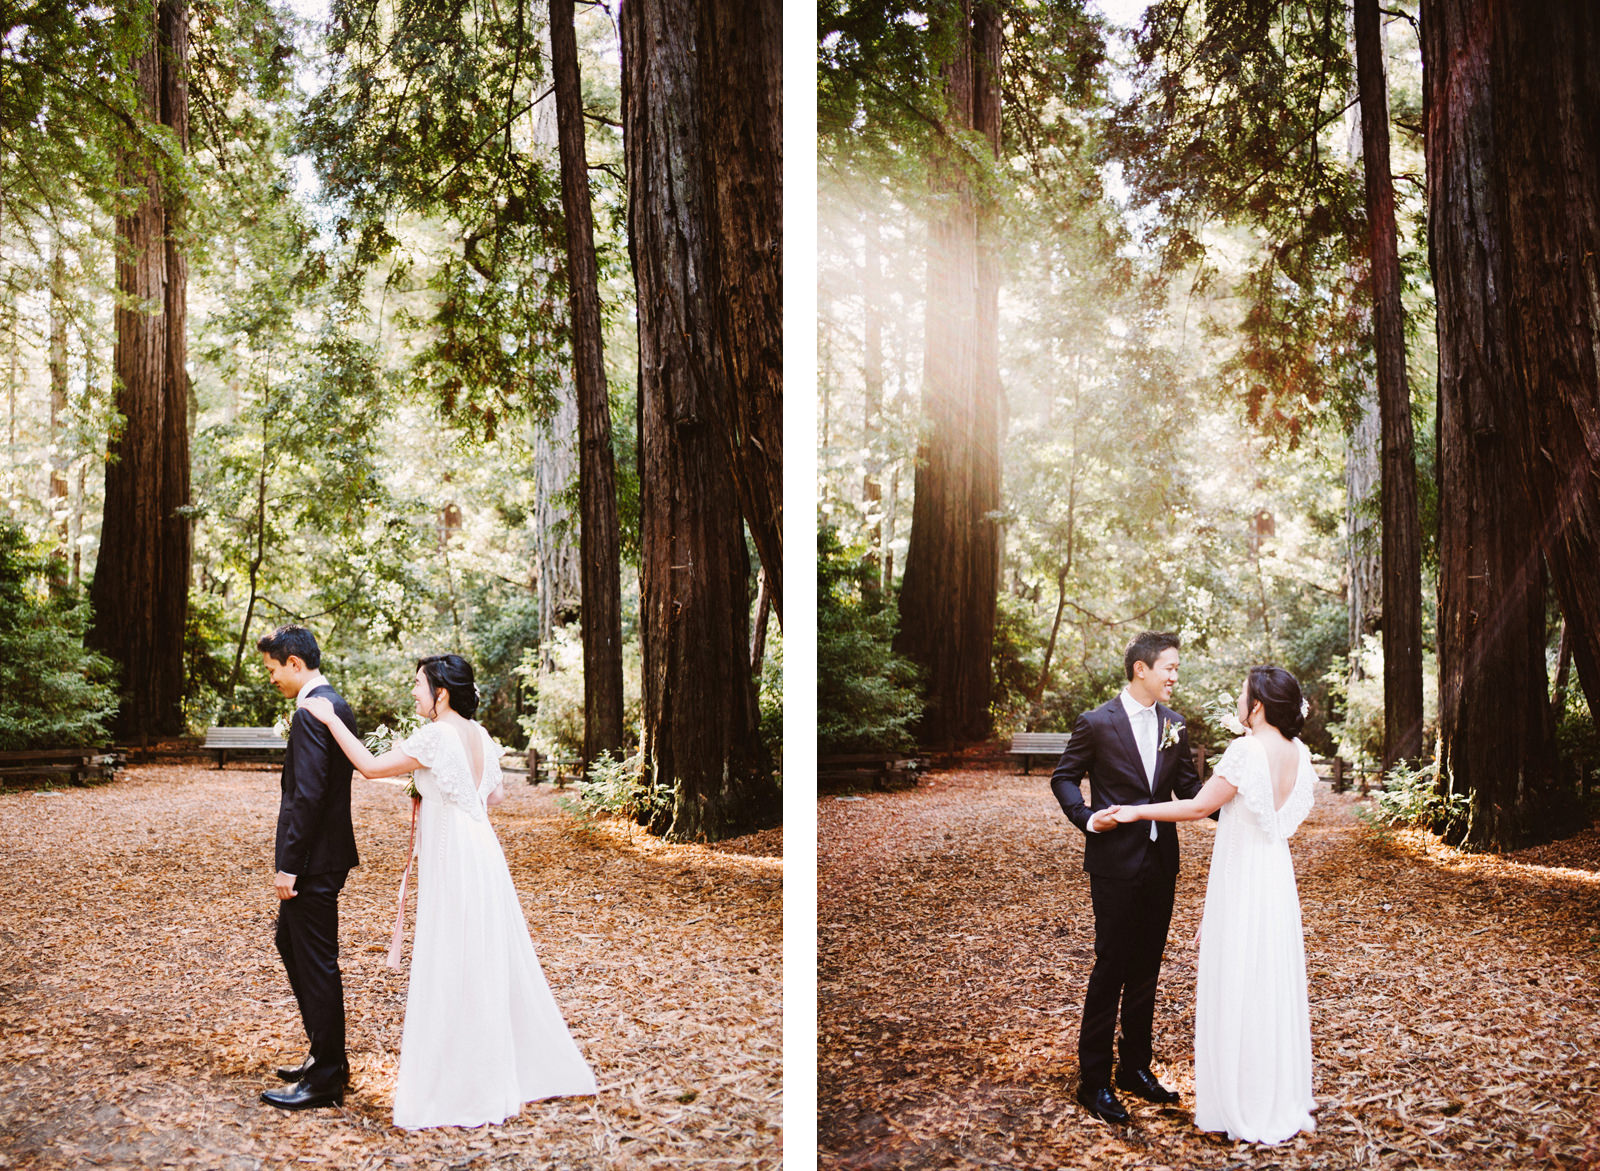 kimclay-blog-006 REDWOOD FOREST WEDDING